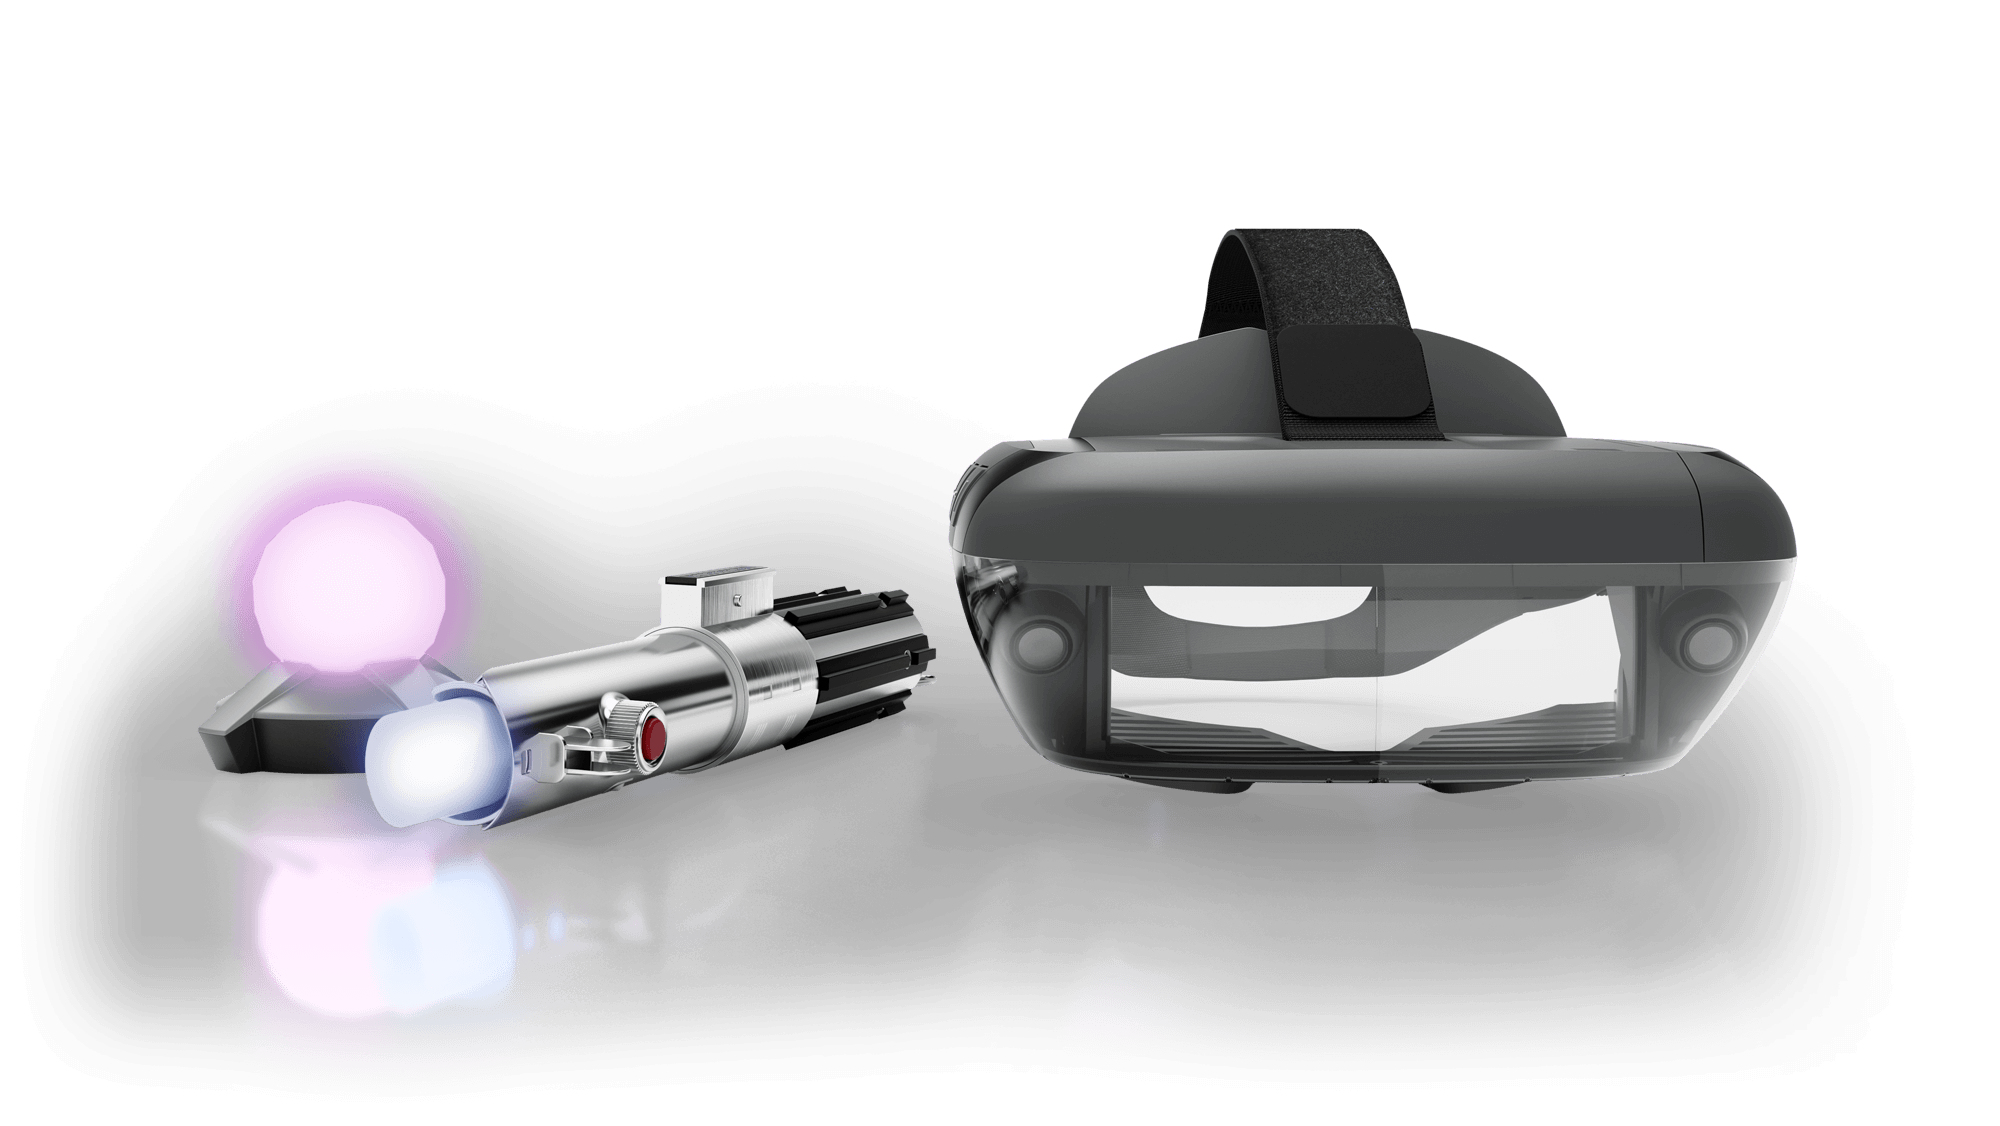 Star Wars Jedi Challenge Vr Headset